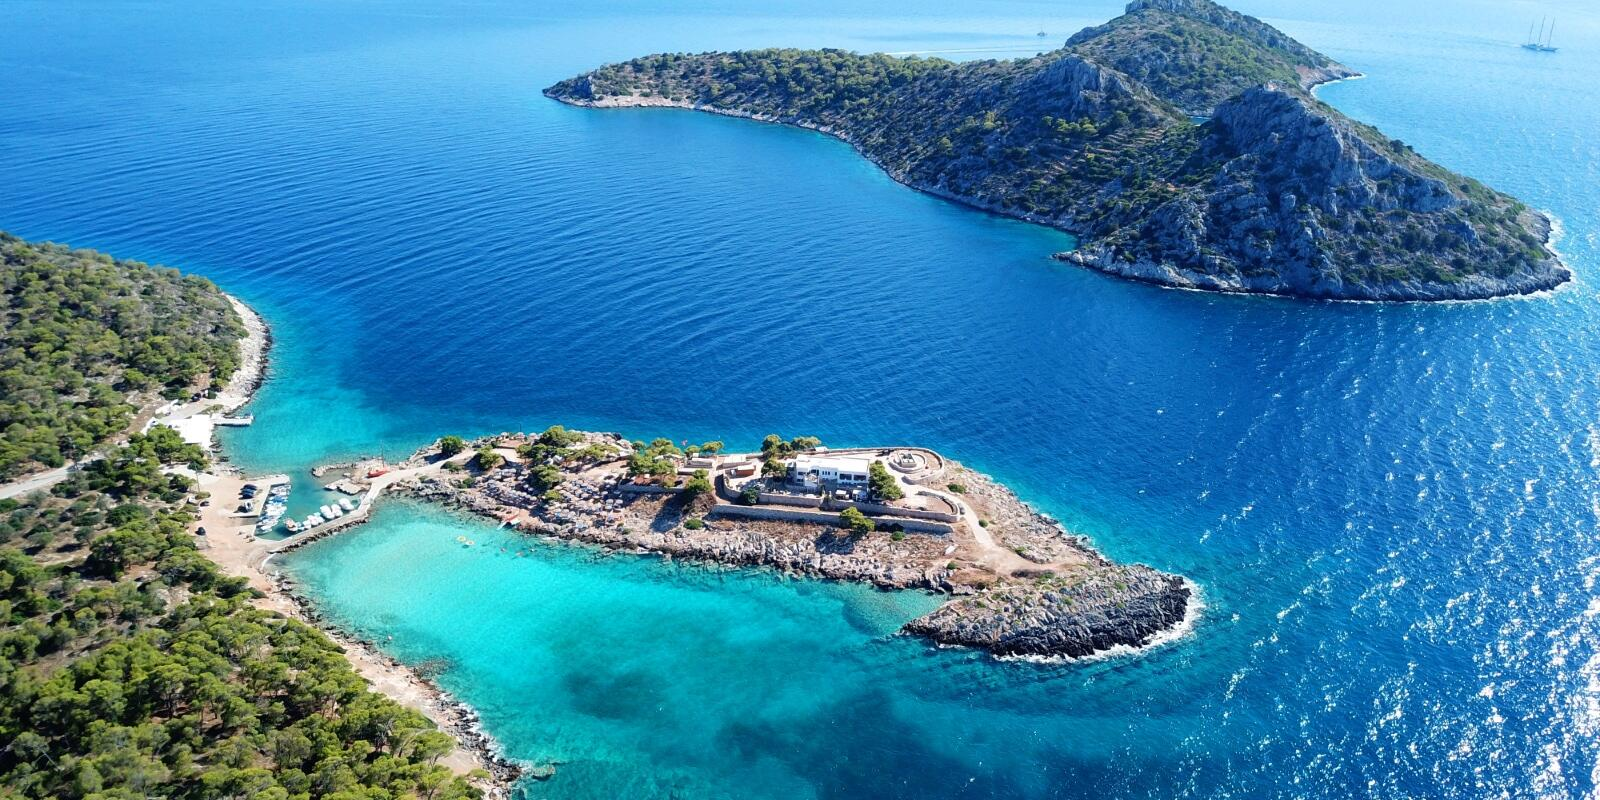 7 Nights on board exploring the SARONIC ISLANDS and PELOPONNESUS coasts with experienced skipper.